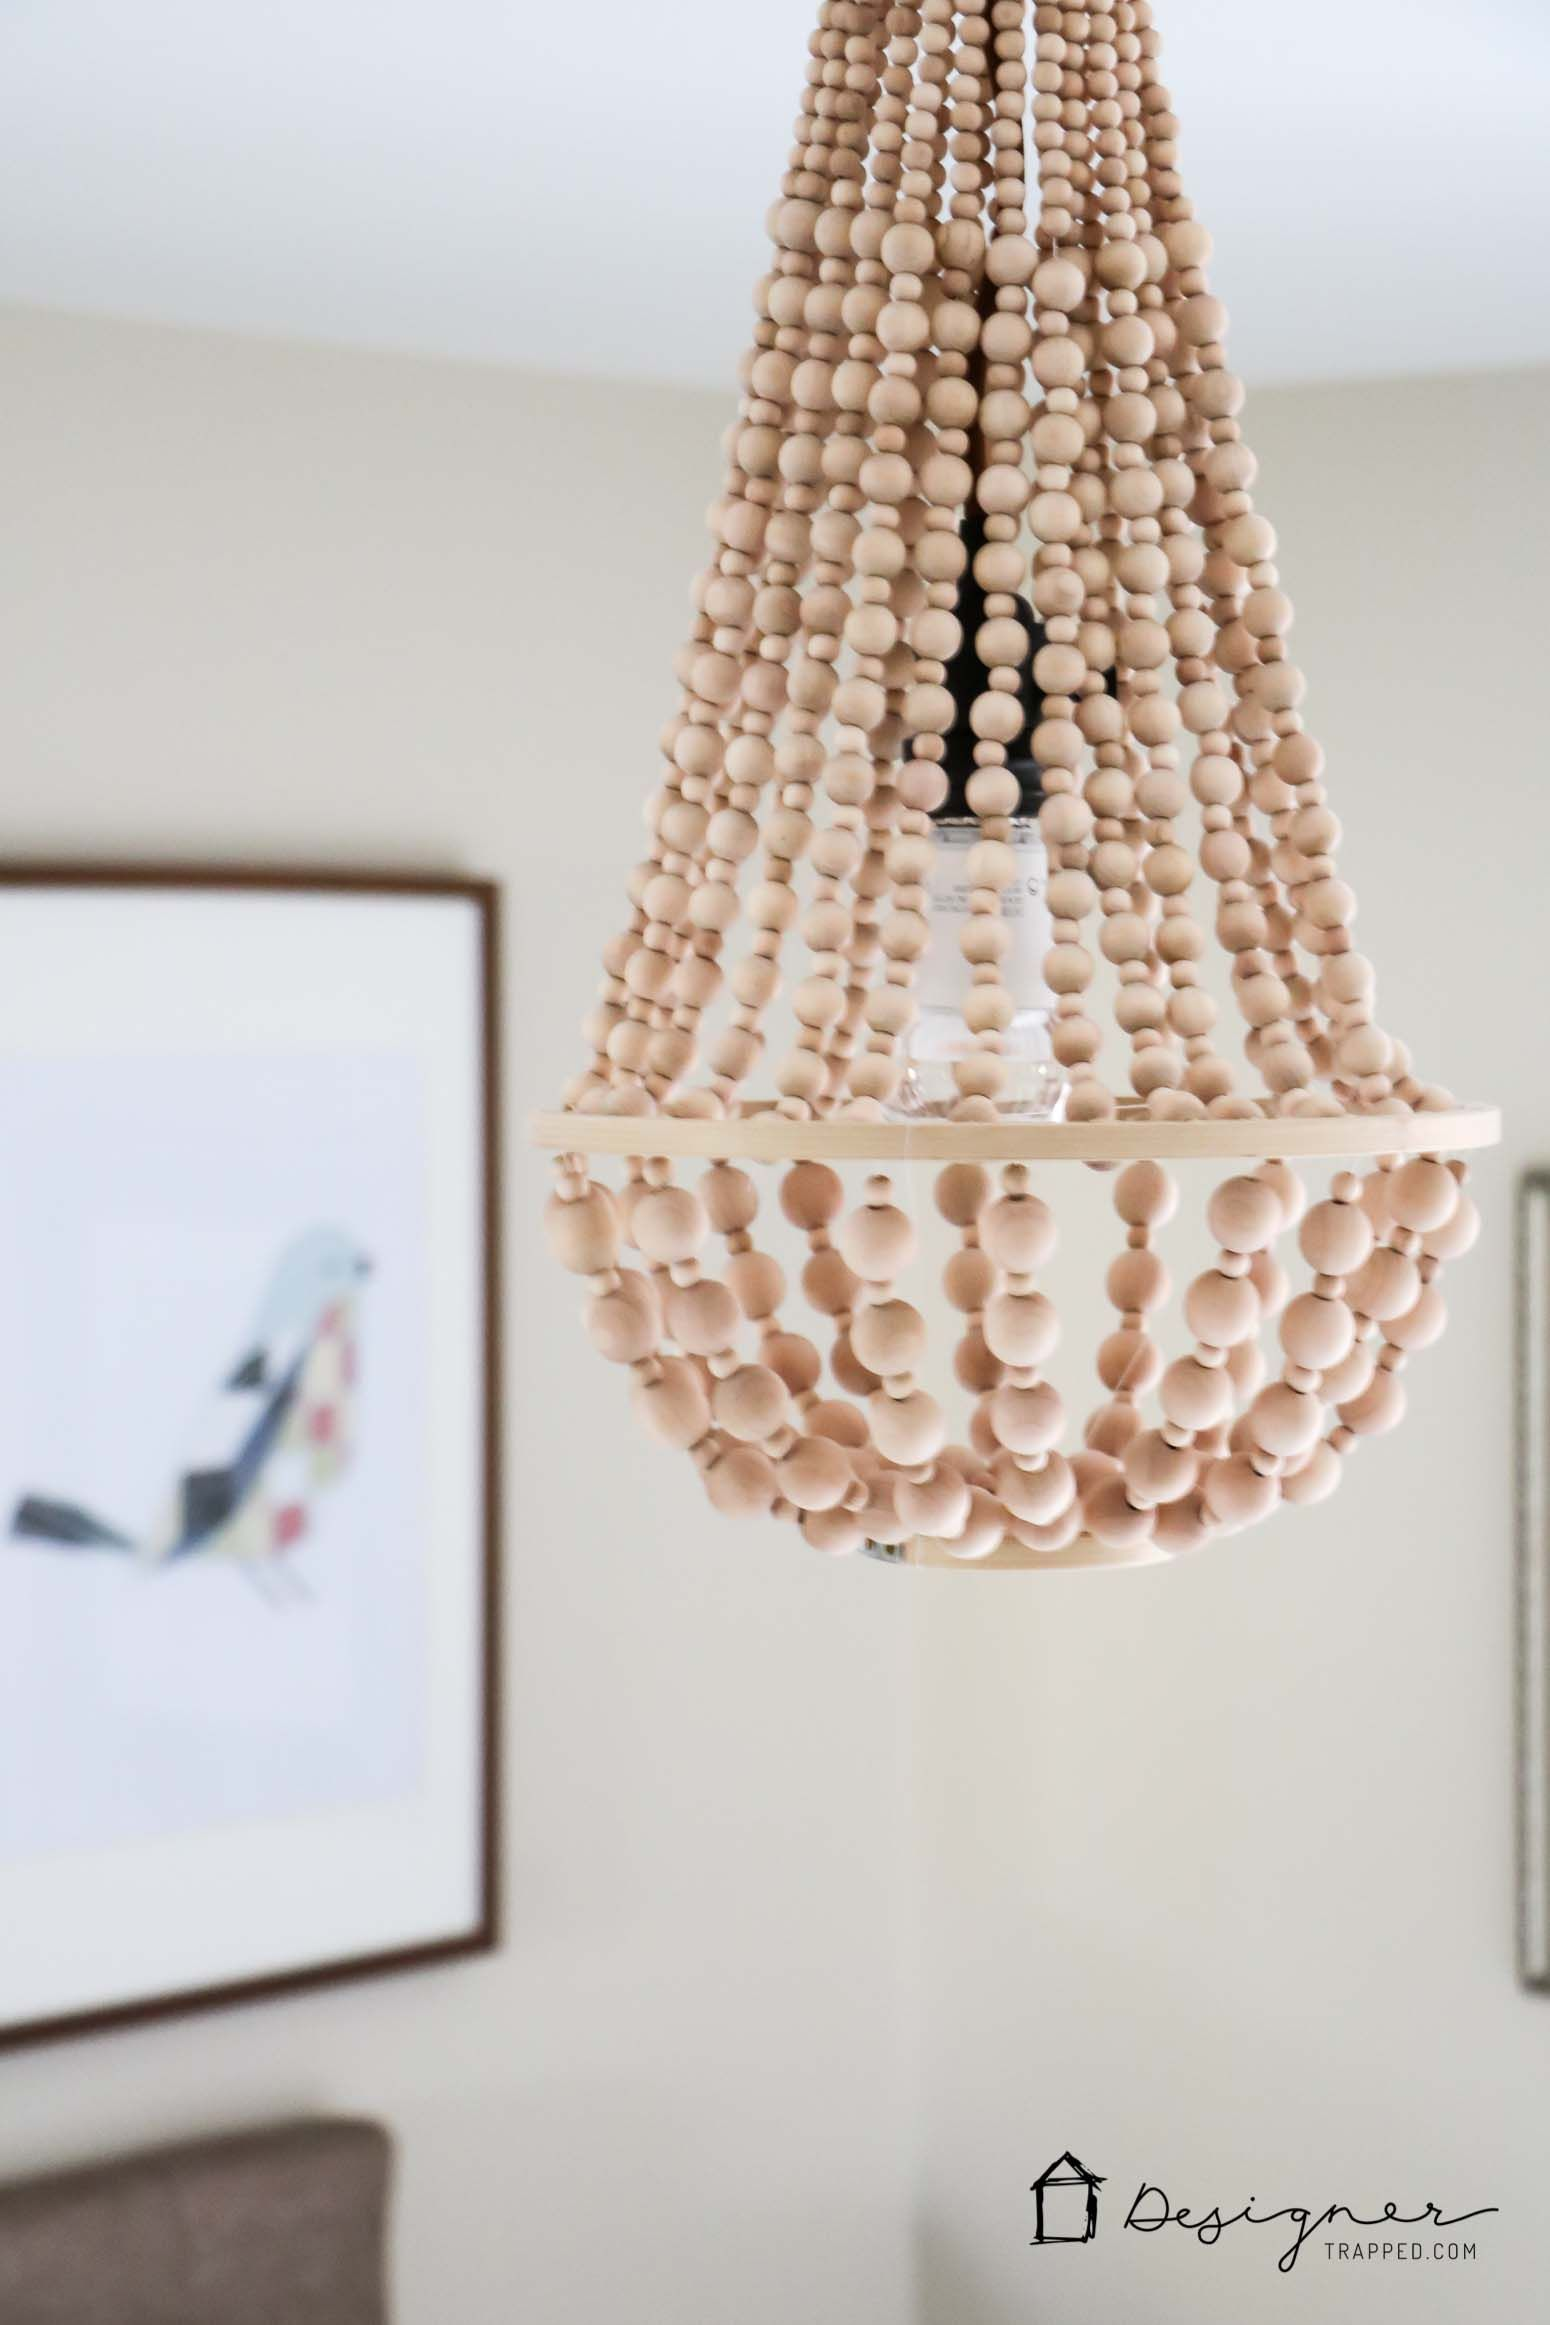 Kronleuchter Selber Machen Diy Chandelier From Wood Beads Home Decor And Ideas